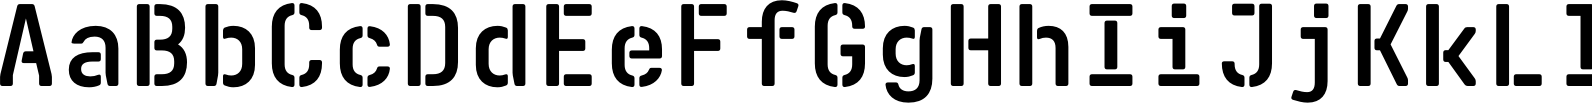 Realtime Stencil Rounded Bold Font